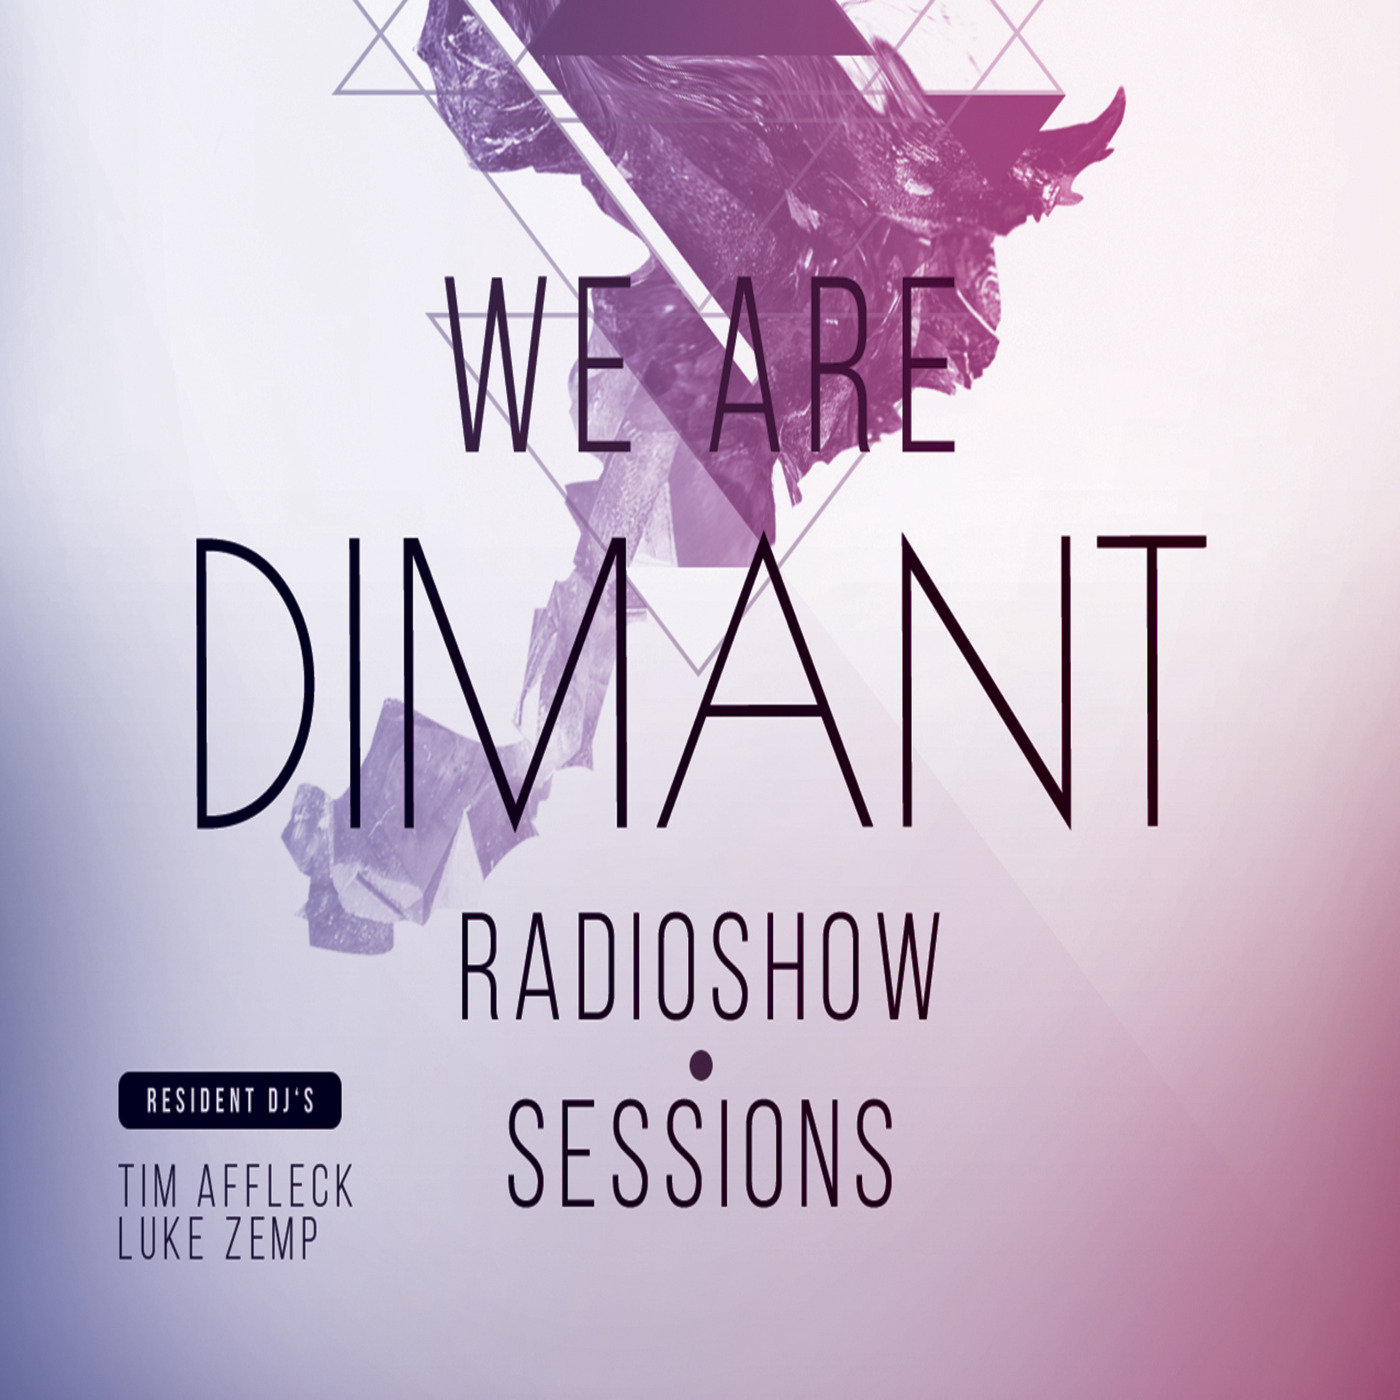 <![CDATA[We Are Dimant Radioshow Sessions]]>